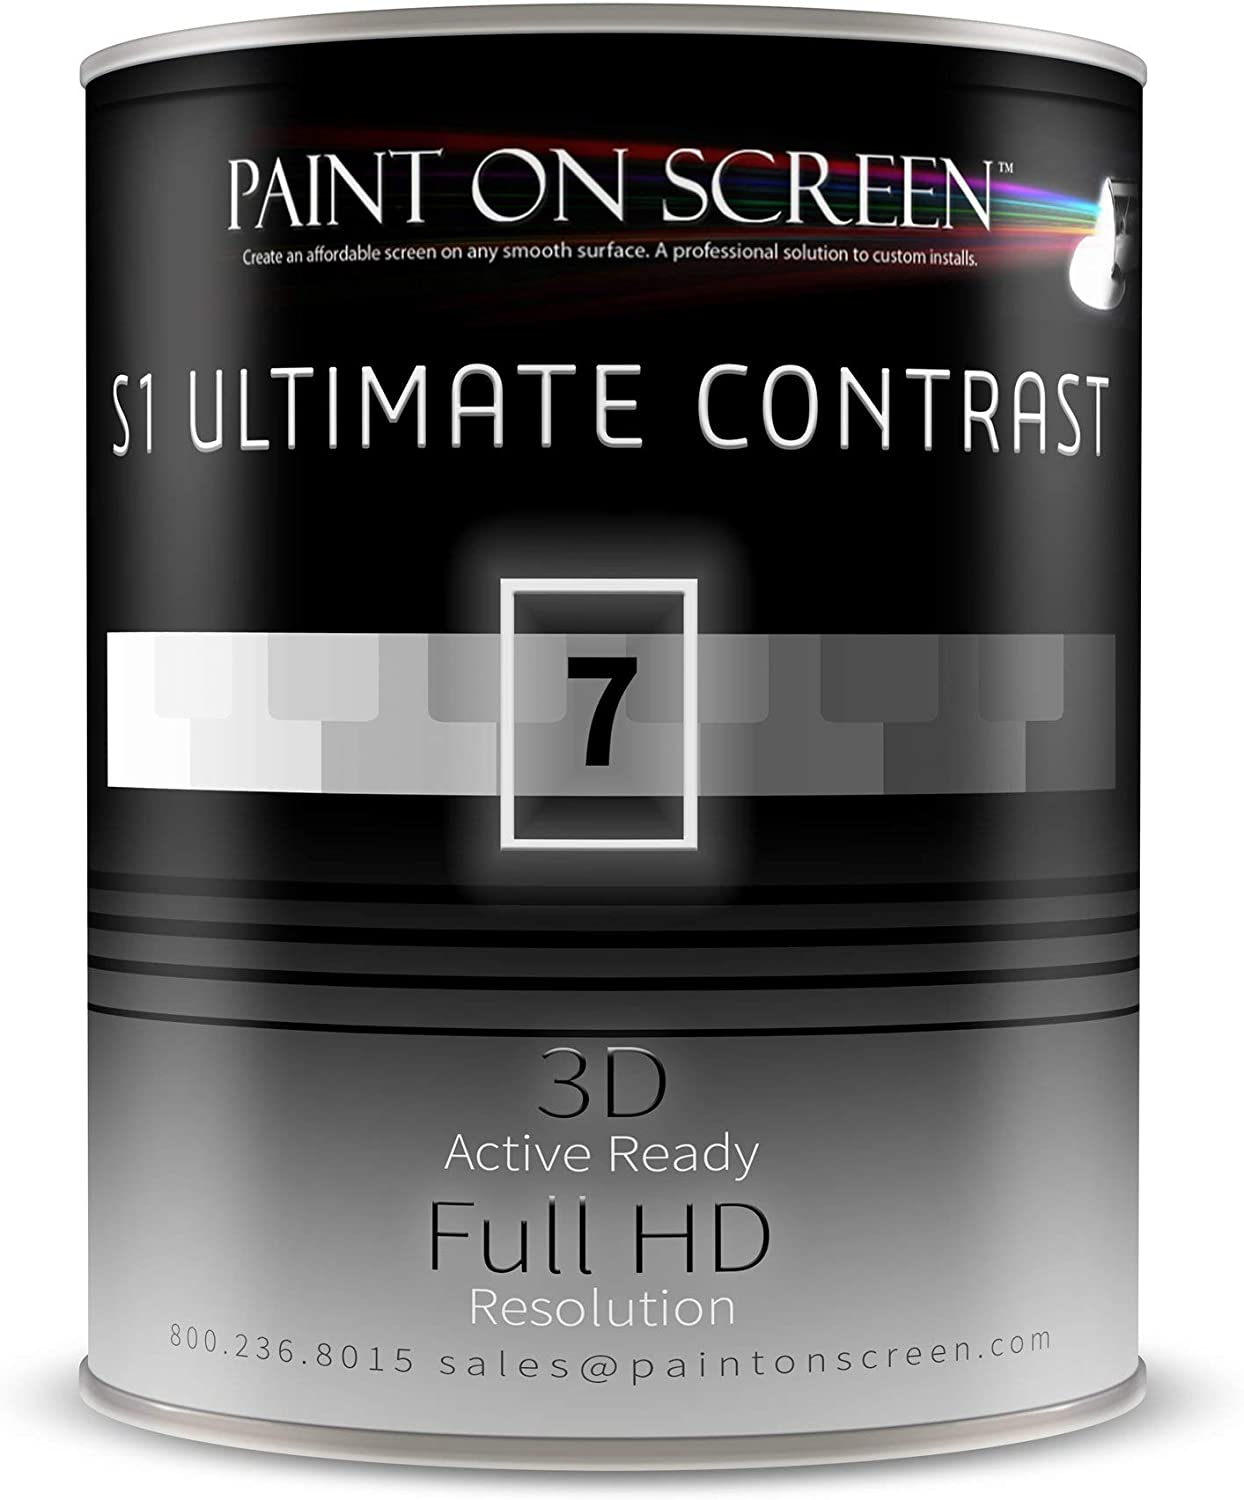 Paint On Screen Projection/Projector Screen Paint - S1 Ultimate Contrast review